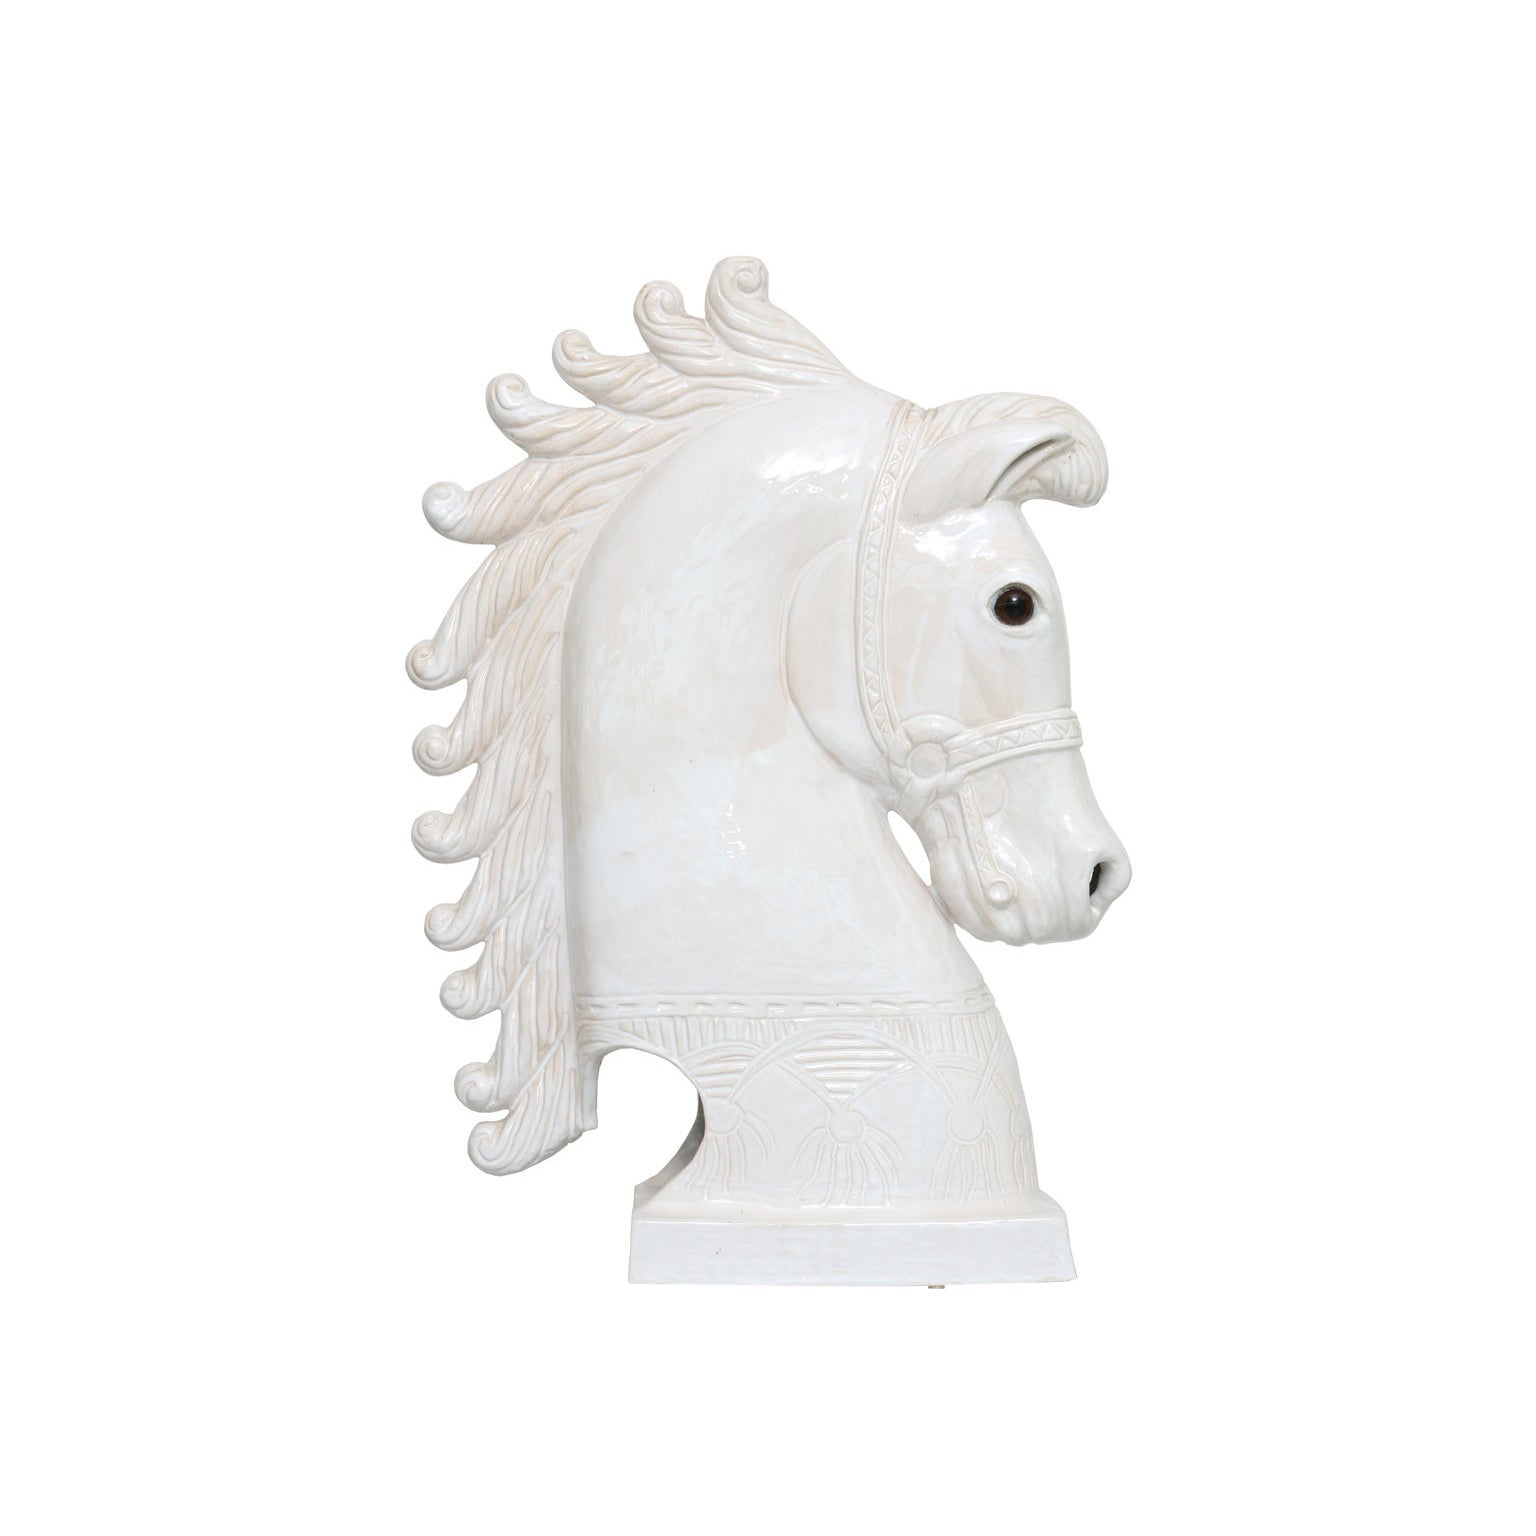 Midcentury Glazed Pottery Horse Head Sculpture, France, 1950s